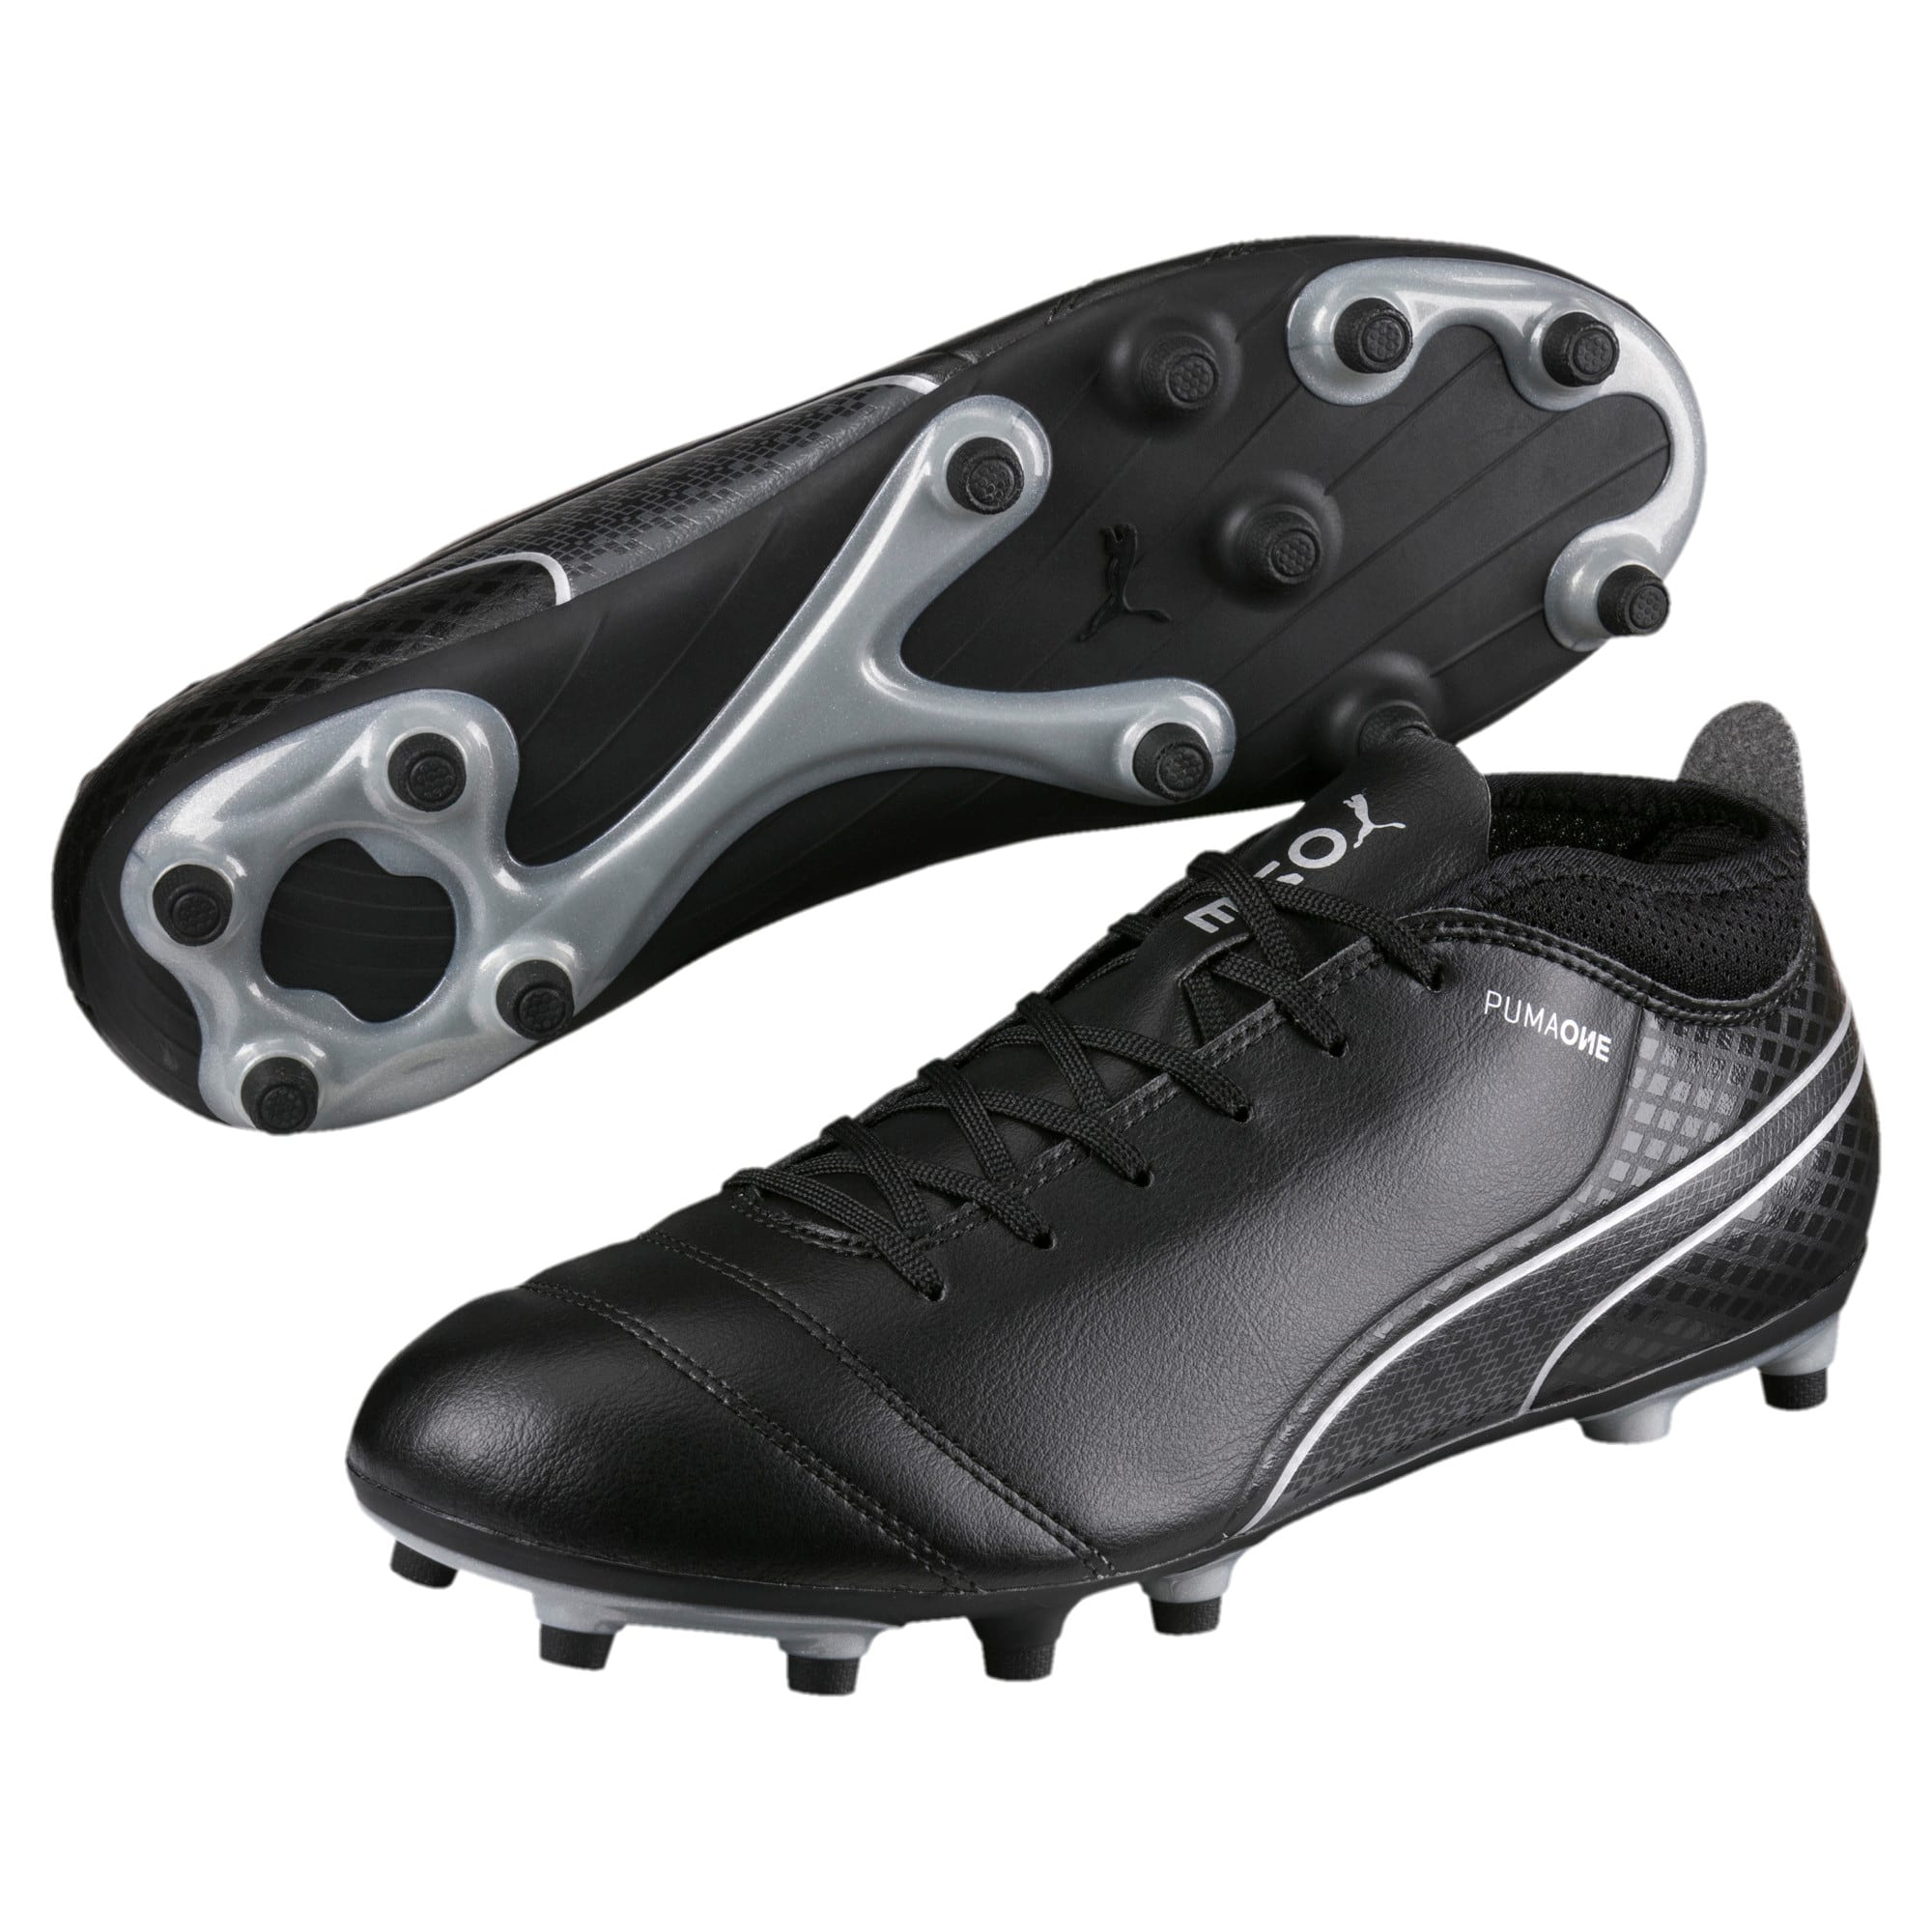 Thumbnail 2 of ONE 17.4 FG Men's Football Boots, Black-Black-Silver, medium-IND